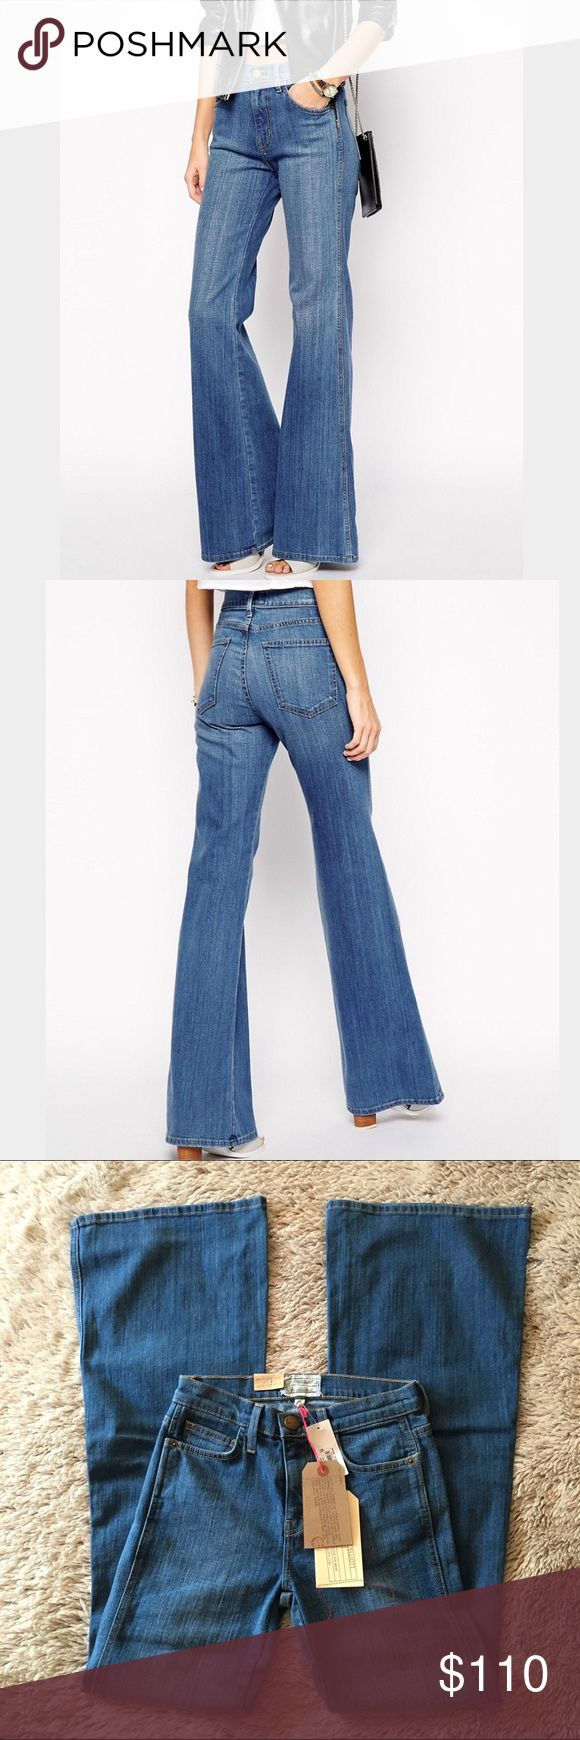 """NWT-Current/Elliott 'The Girl Crush' Flare Jeans New w tags! Current/Elliot 'the girl crush' flare/wide leg jeans in cruiser (color of the denim).  Size 24.  Inseam is 33.75"""".  5 pockets with a higher 9"""" rise. Super cute and right on trend!!Boho Chic!! Made in USA of Italian material. Current/Elliott Jeans Flare & Wide Leg"""